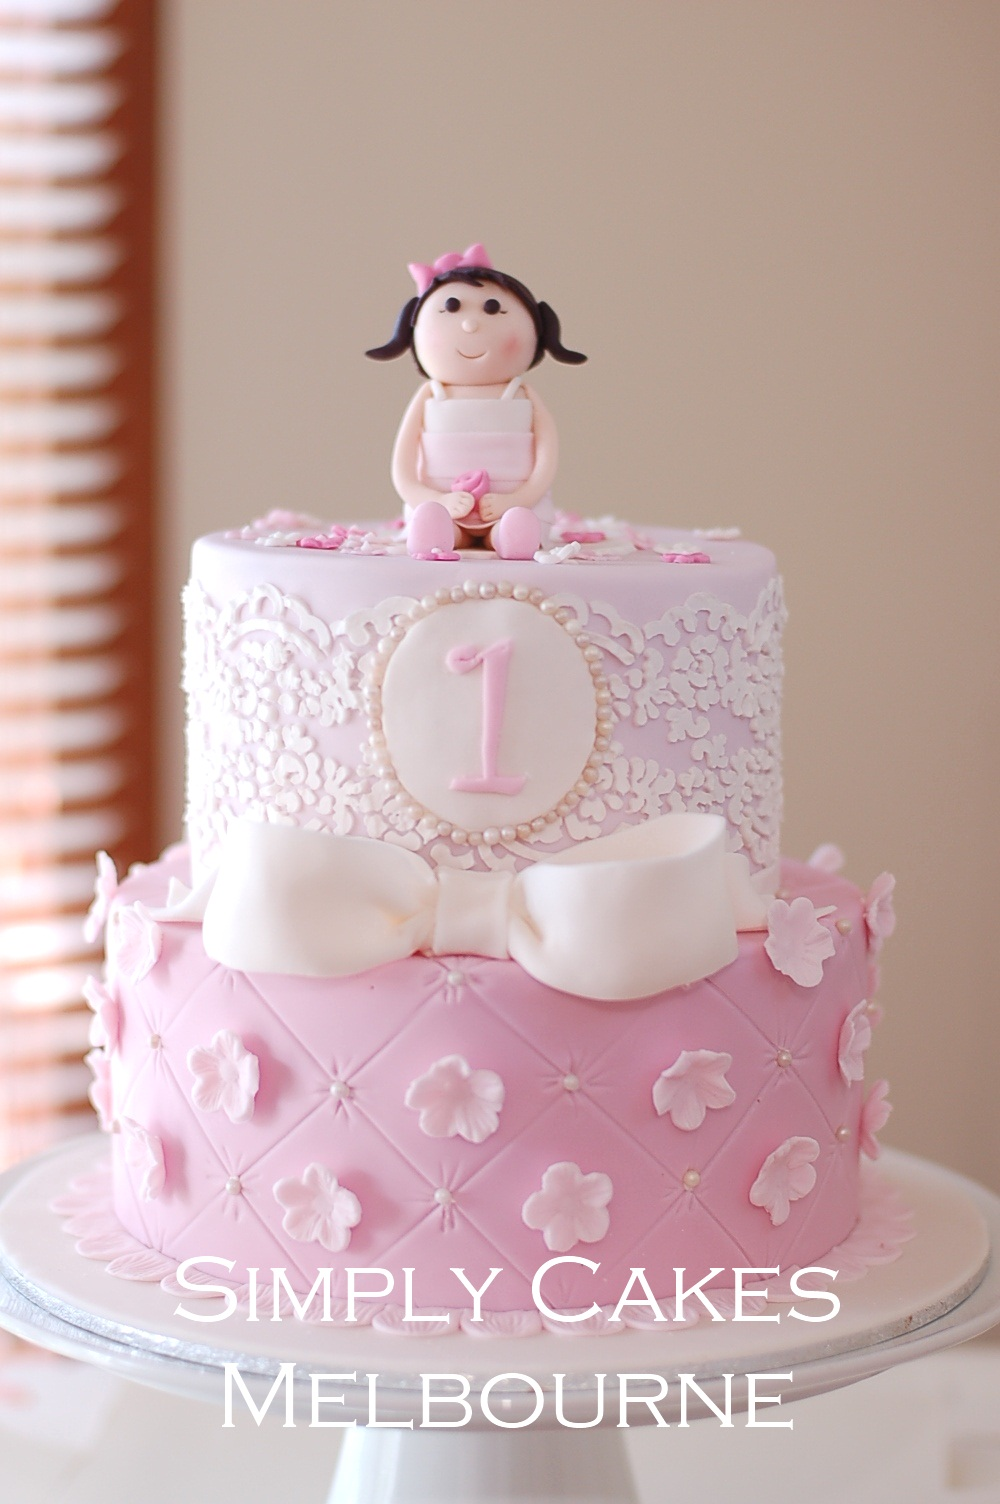 Sensational Simply Cakes Melbourne 1St Birthday Princess Cake Personalised Birthday Cards Veneteletsinfo